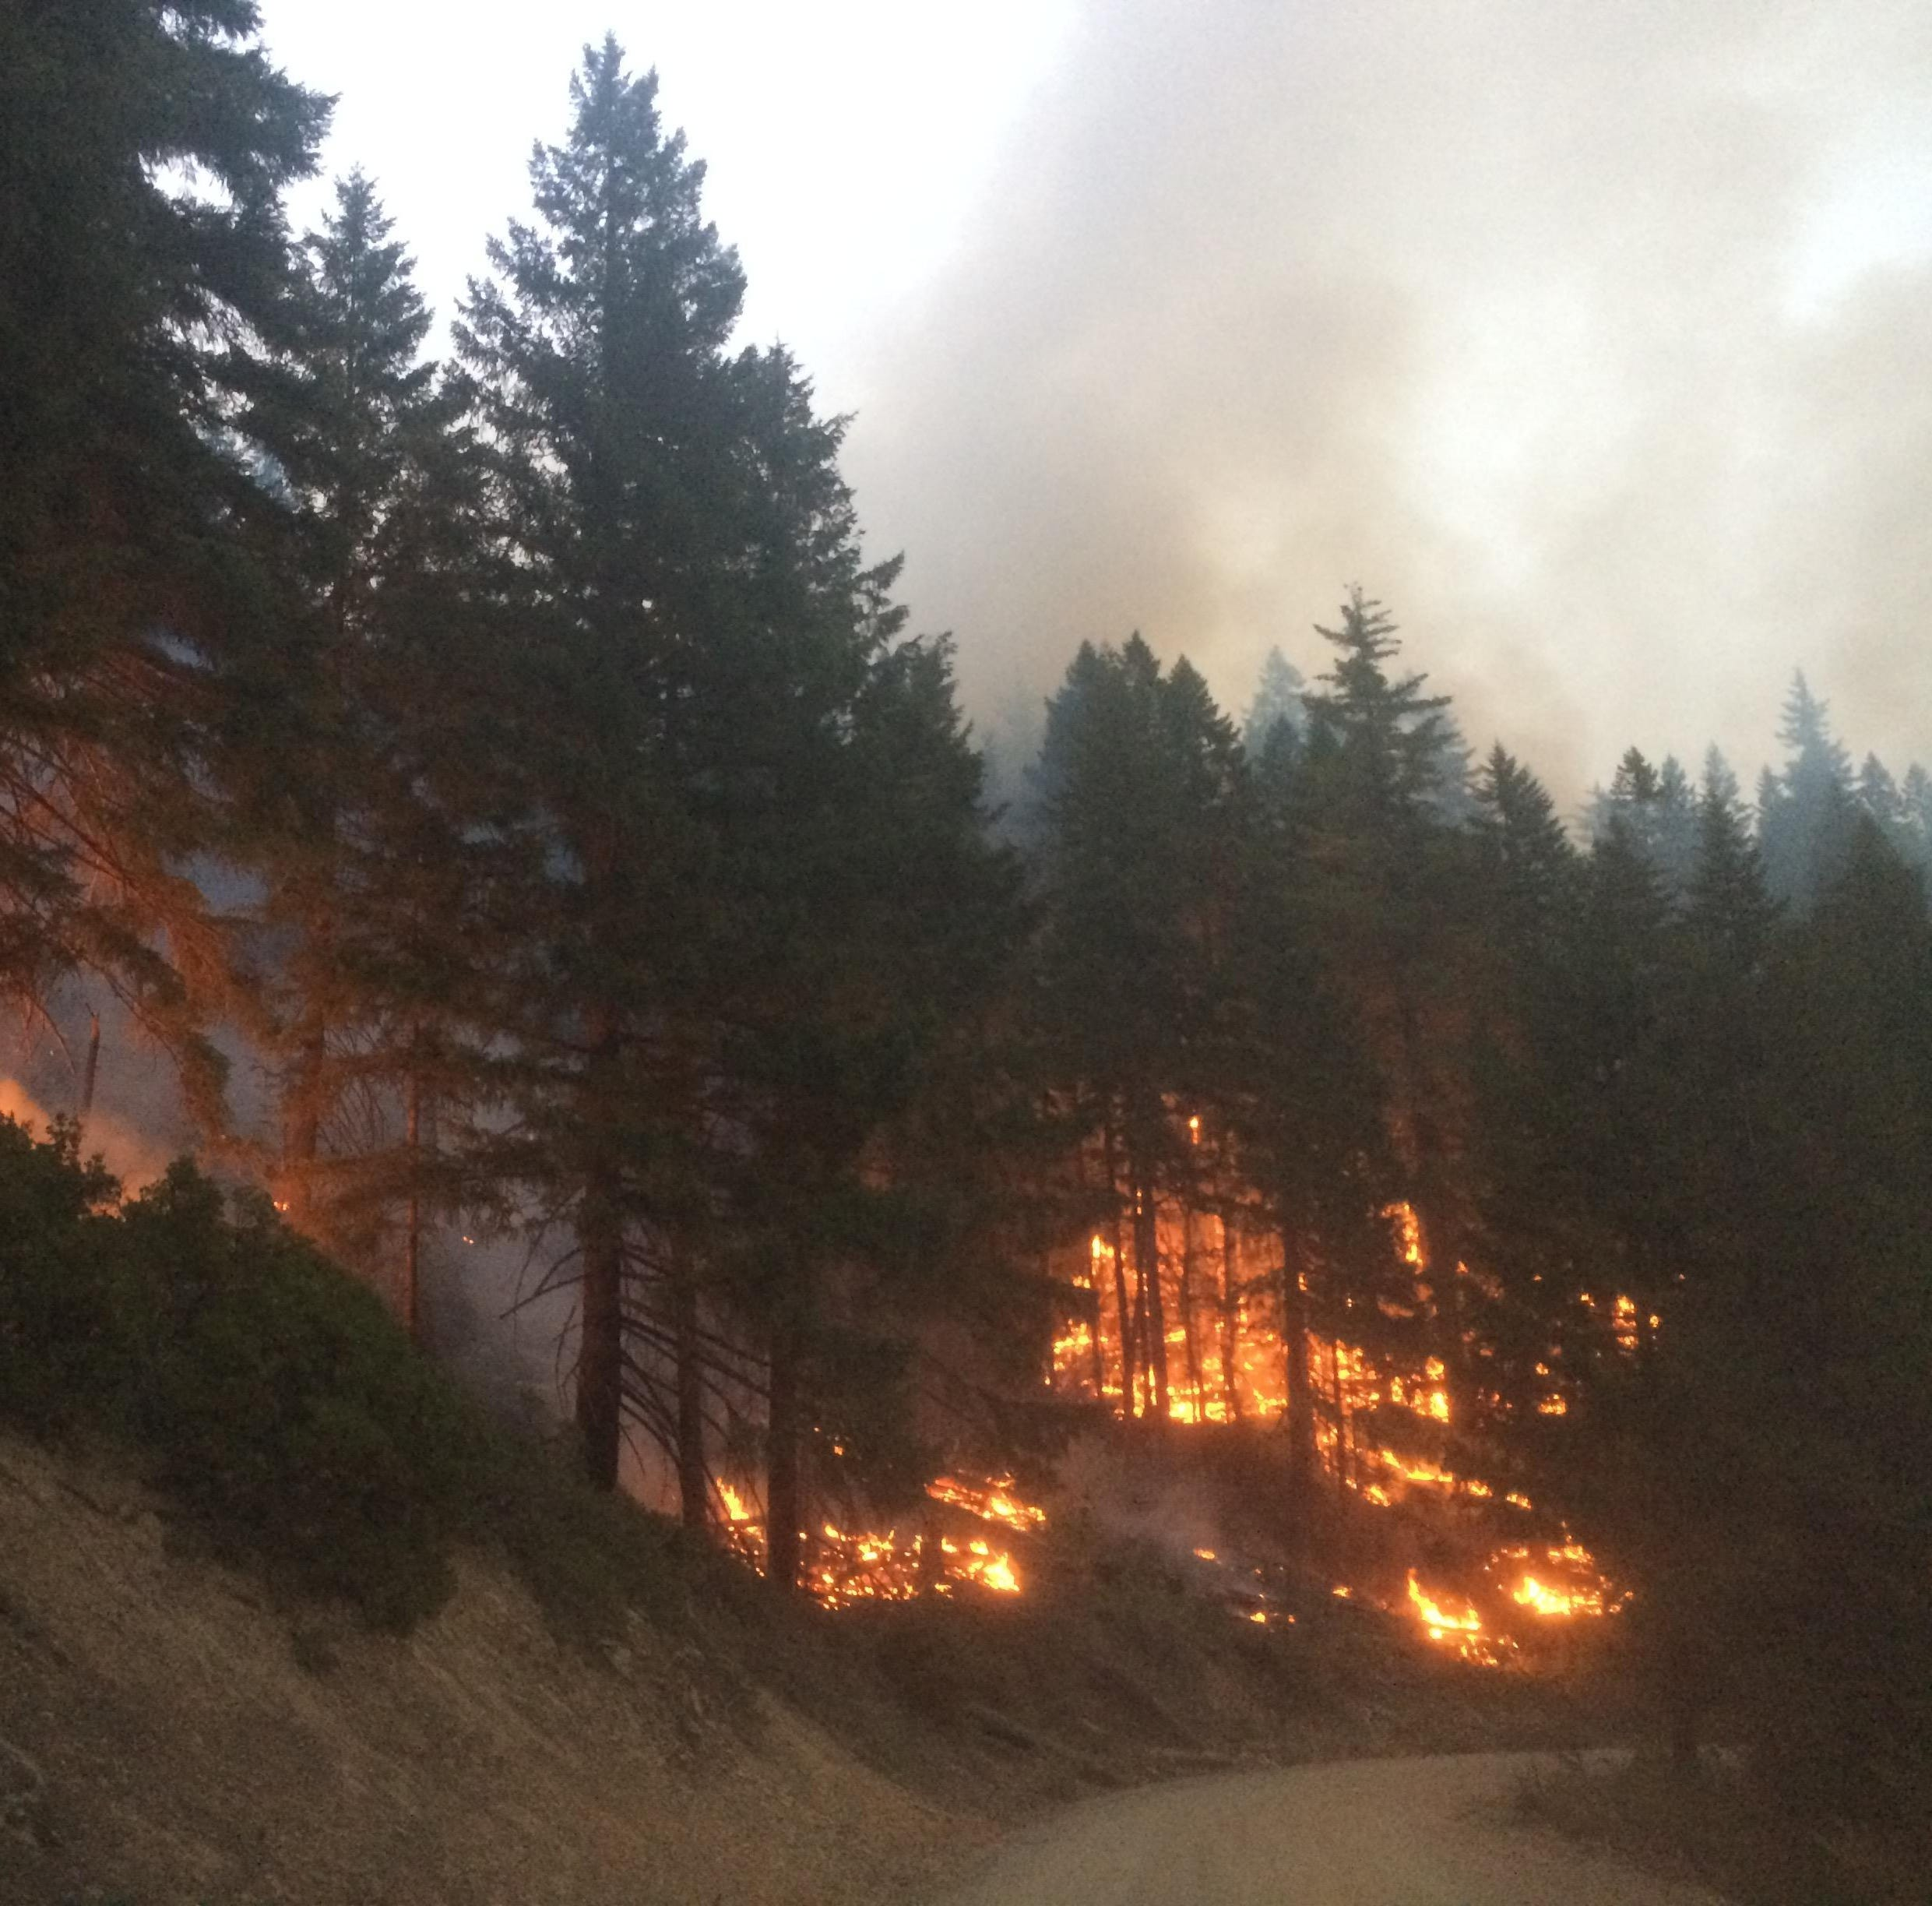 Oregon wildfires: Erratic weather ahead for crews battling 55,000-acre Klondike Fire